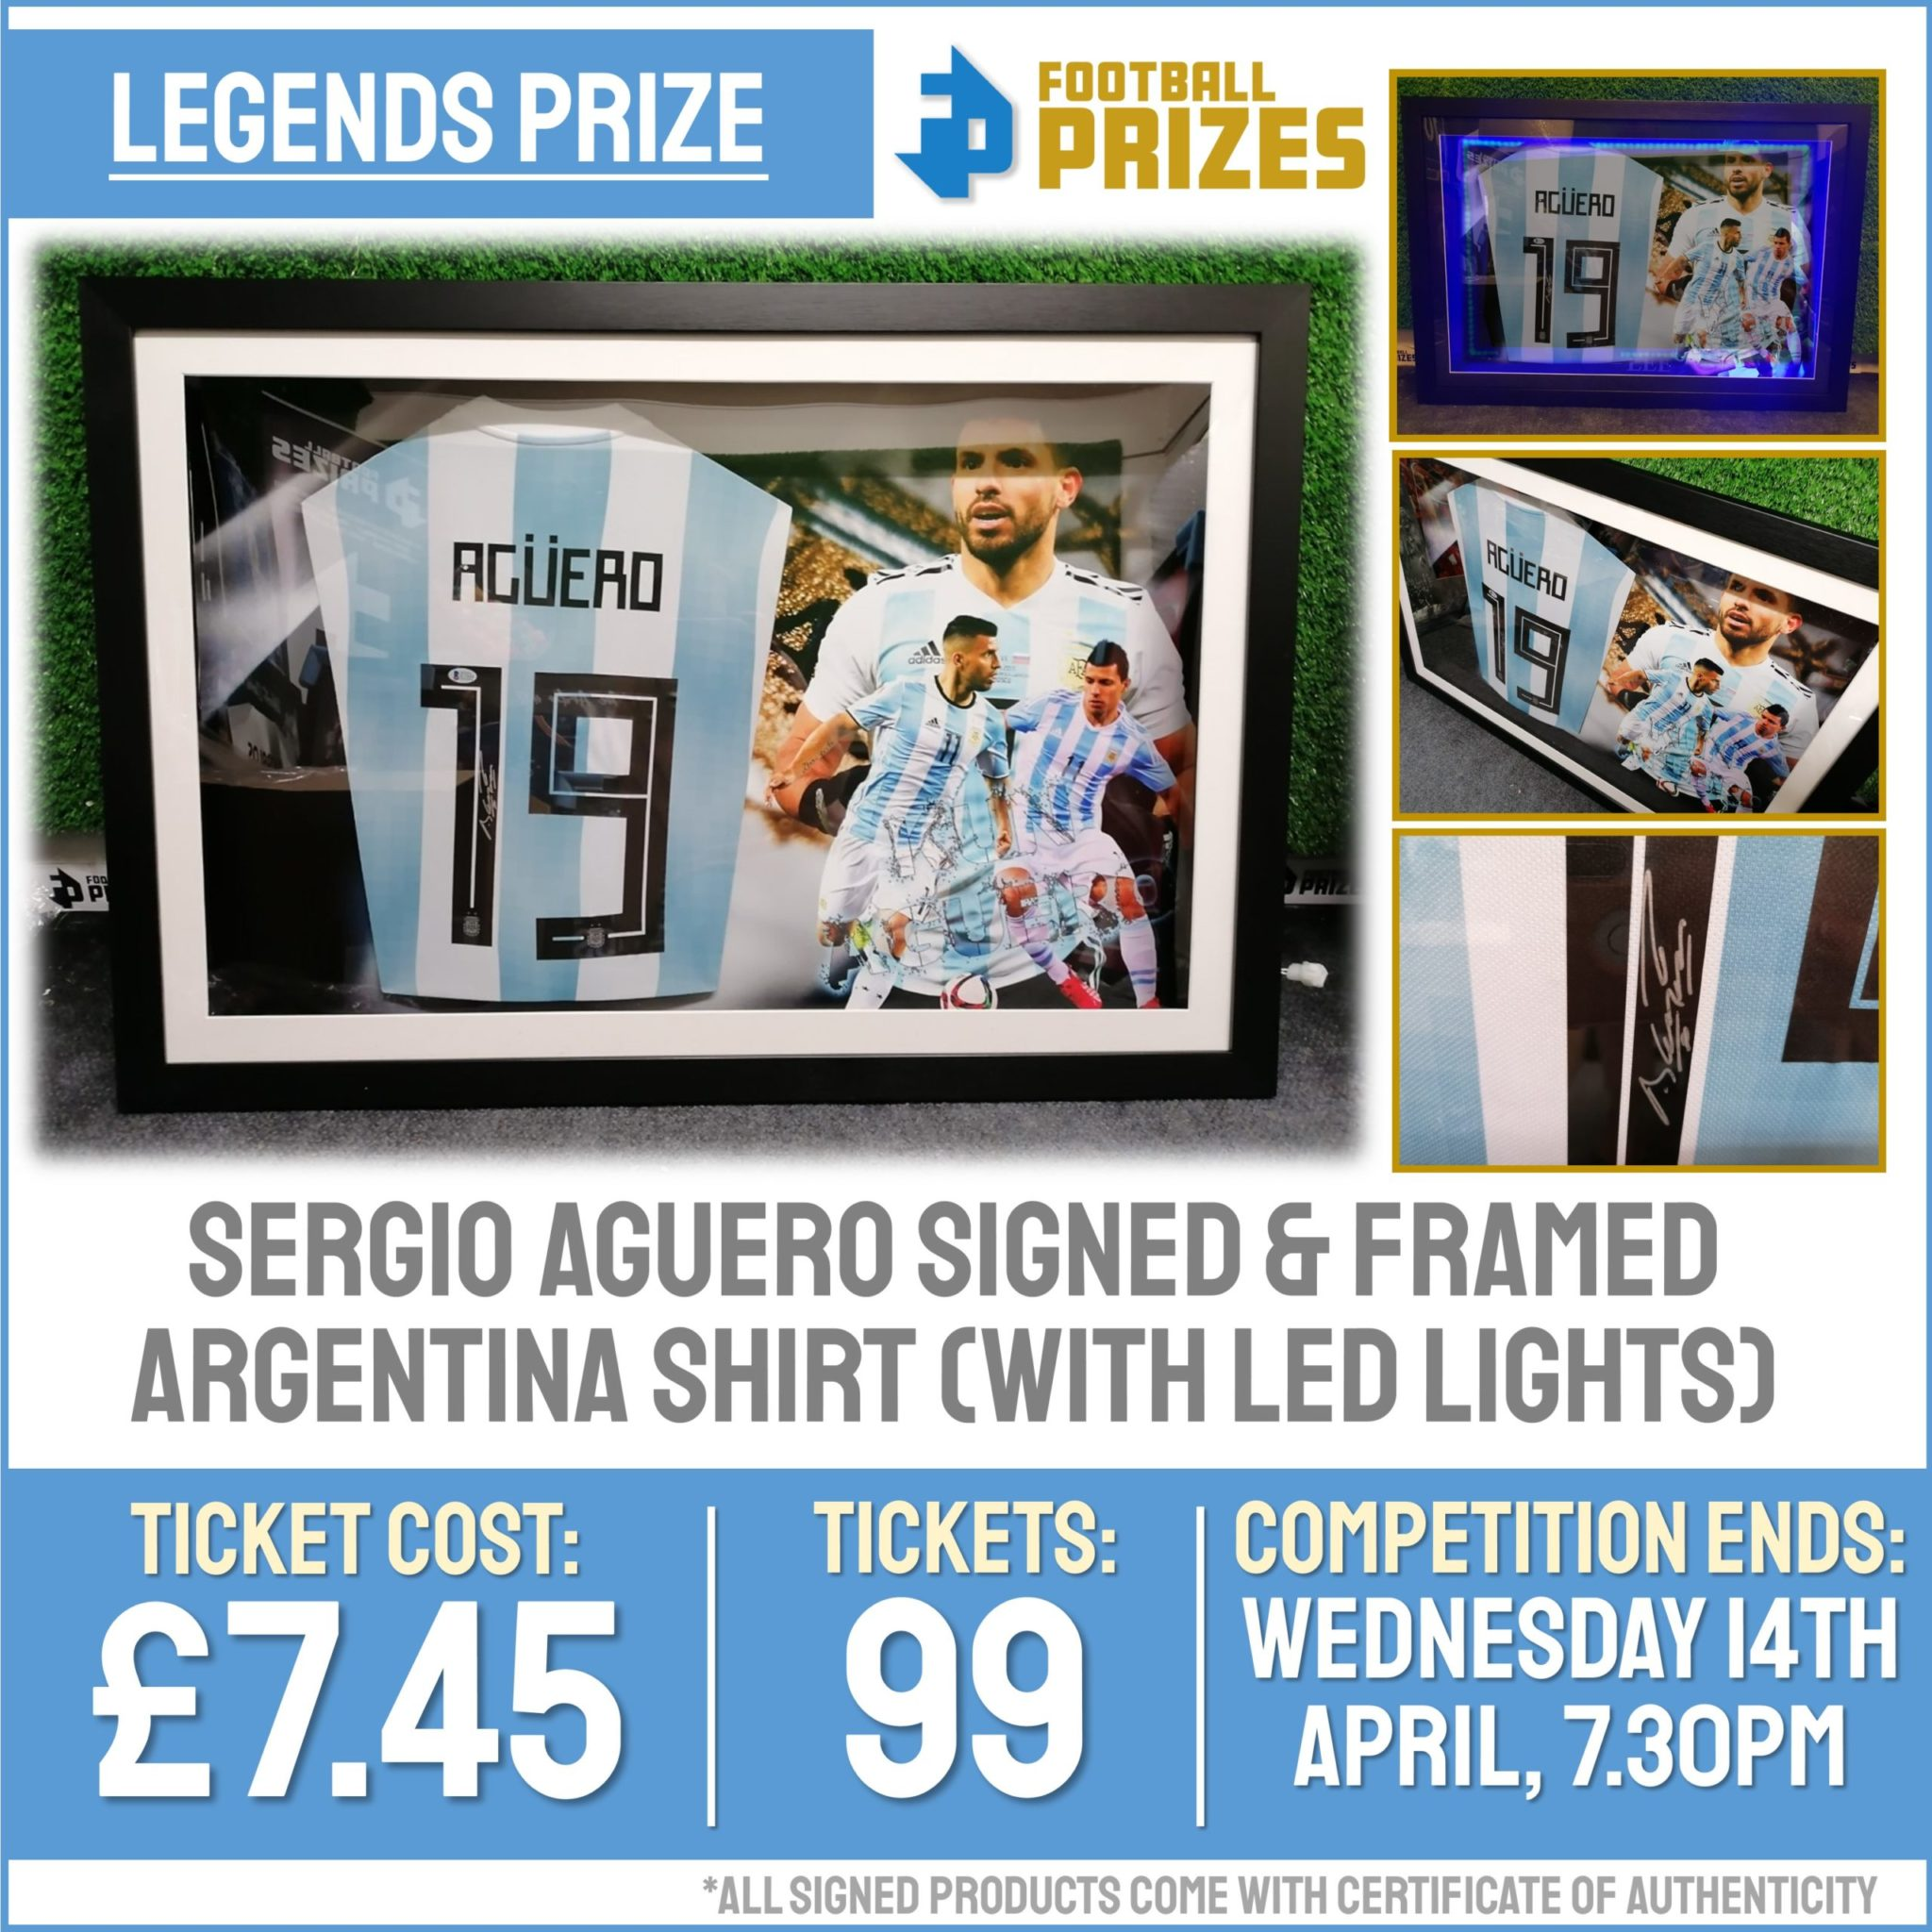 Ends today at 7.30pm! Sergio Aguero Signed & Framed Argentina Shirt (with LED Lights)